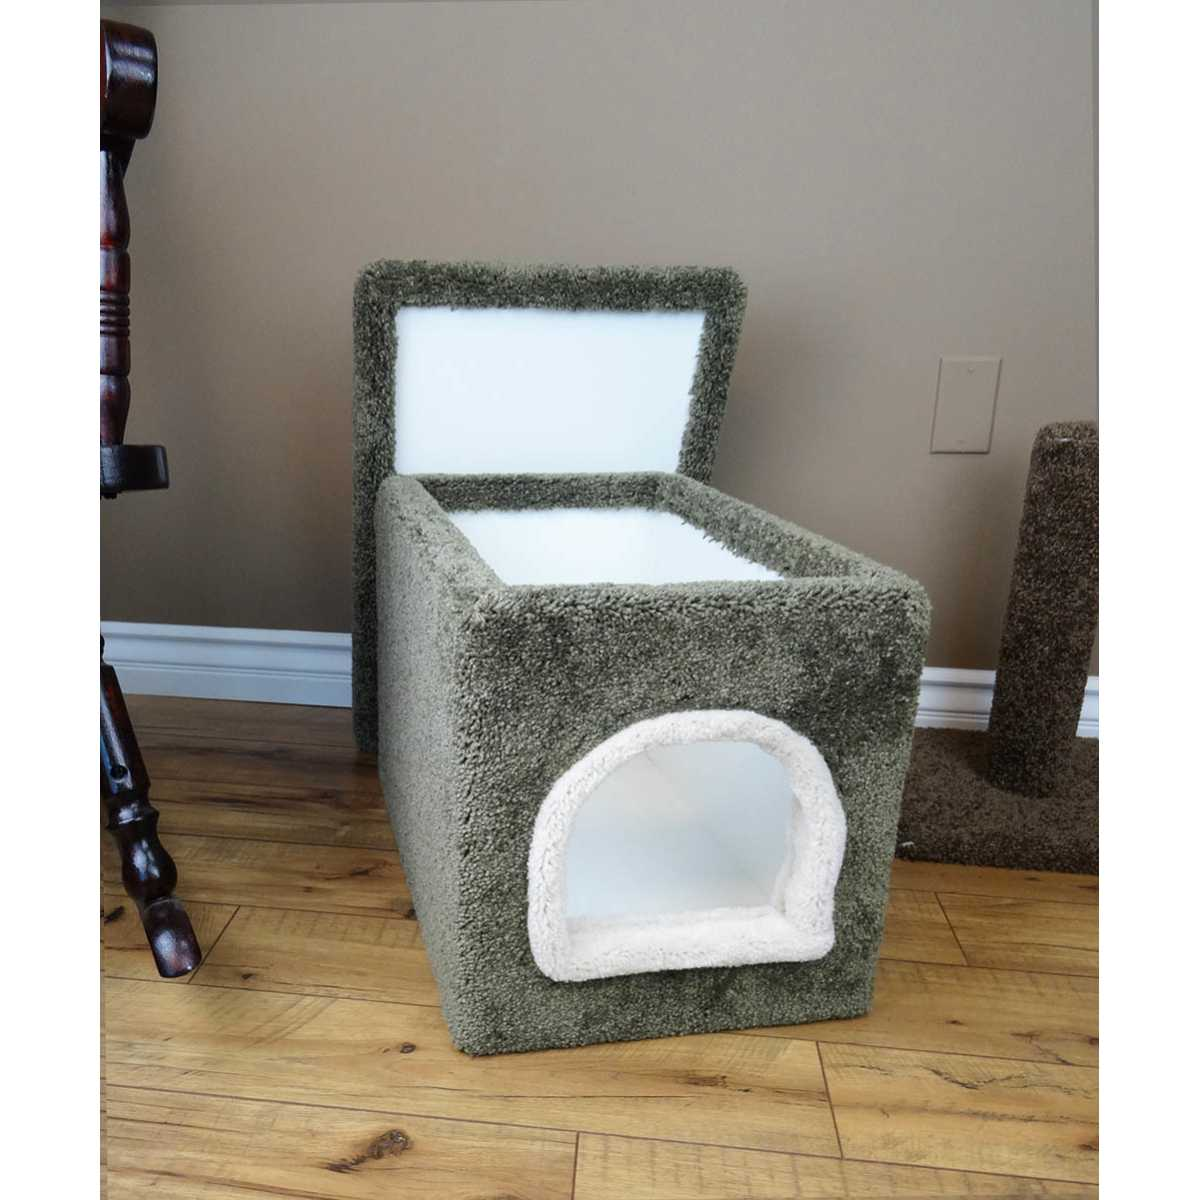 Cat S Choice Small Litter Box Enclosure 110076 Catsplay Superstore